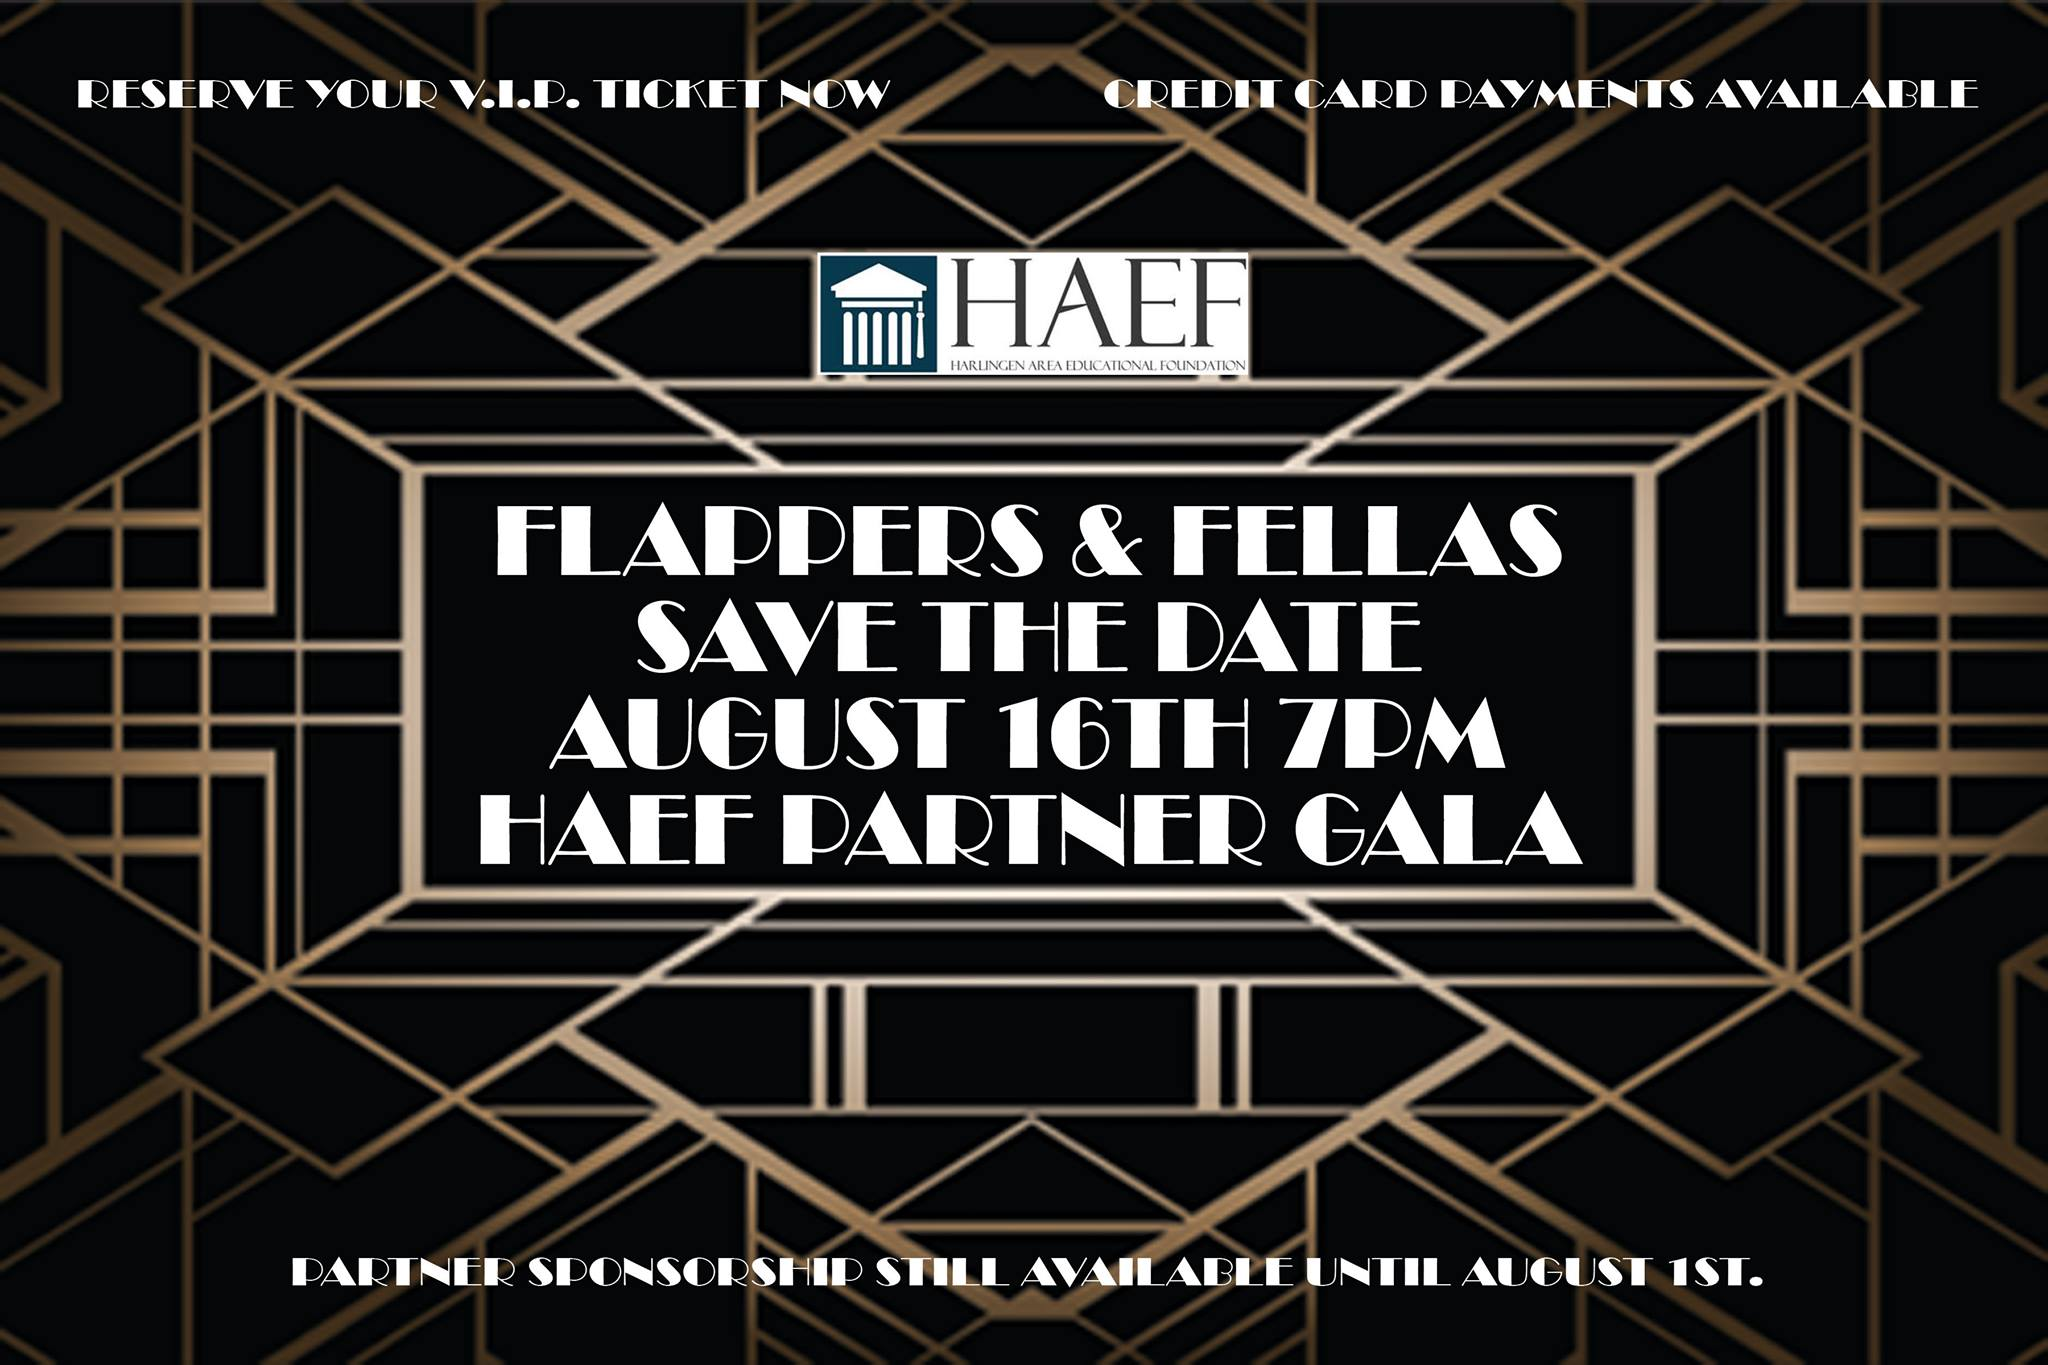 HAEF hosts 6th Annual Partner Gala, tickets available to community